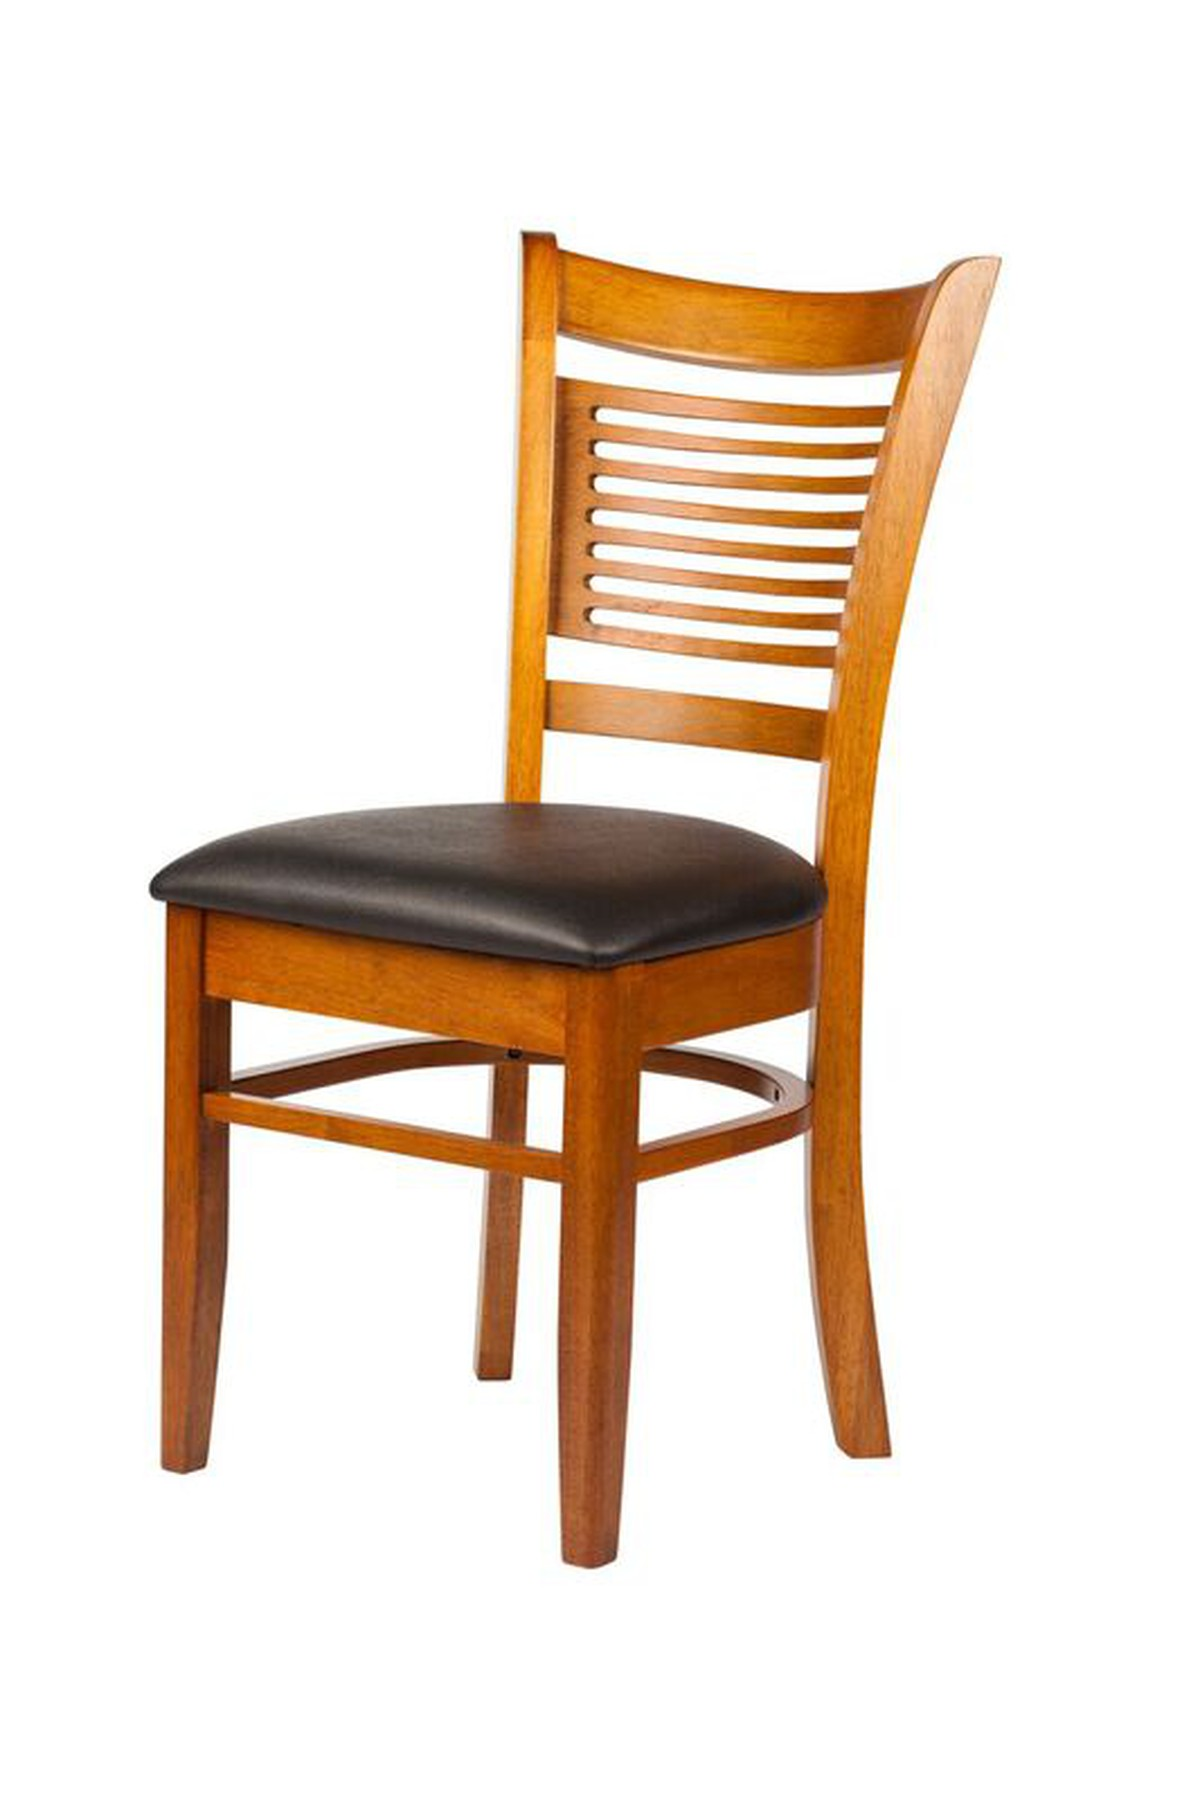 cafe chairs for sale wood rocking porch secondhand hotel furniture dining new oxford